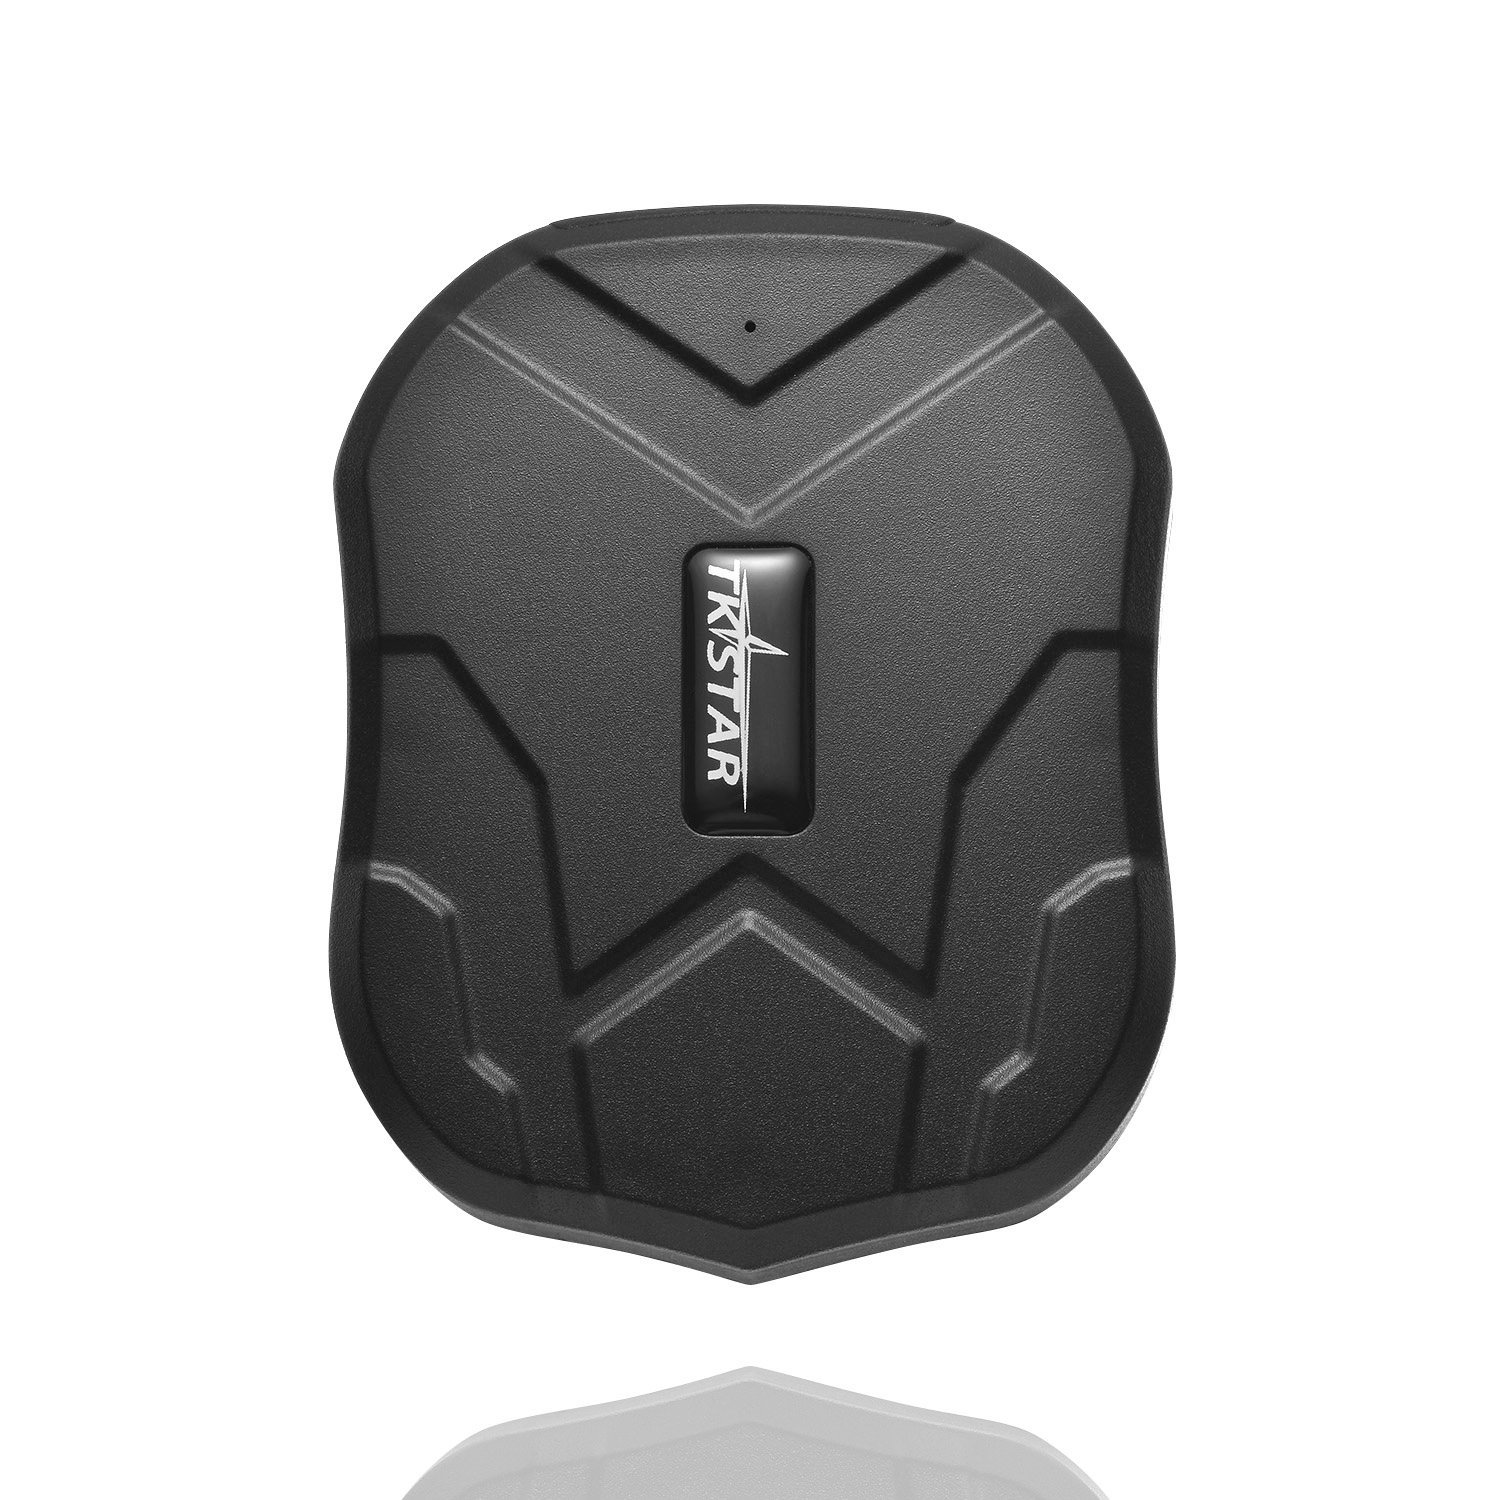 Magnetic Waterproof Vehicle Gps Tracker 90 Days Long Standby,onPoint Free Tracking Free tracking service